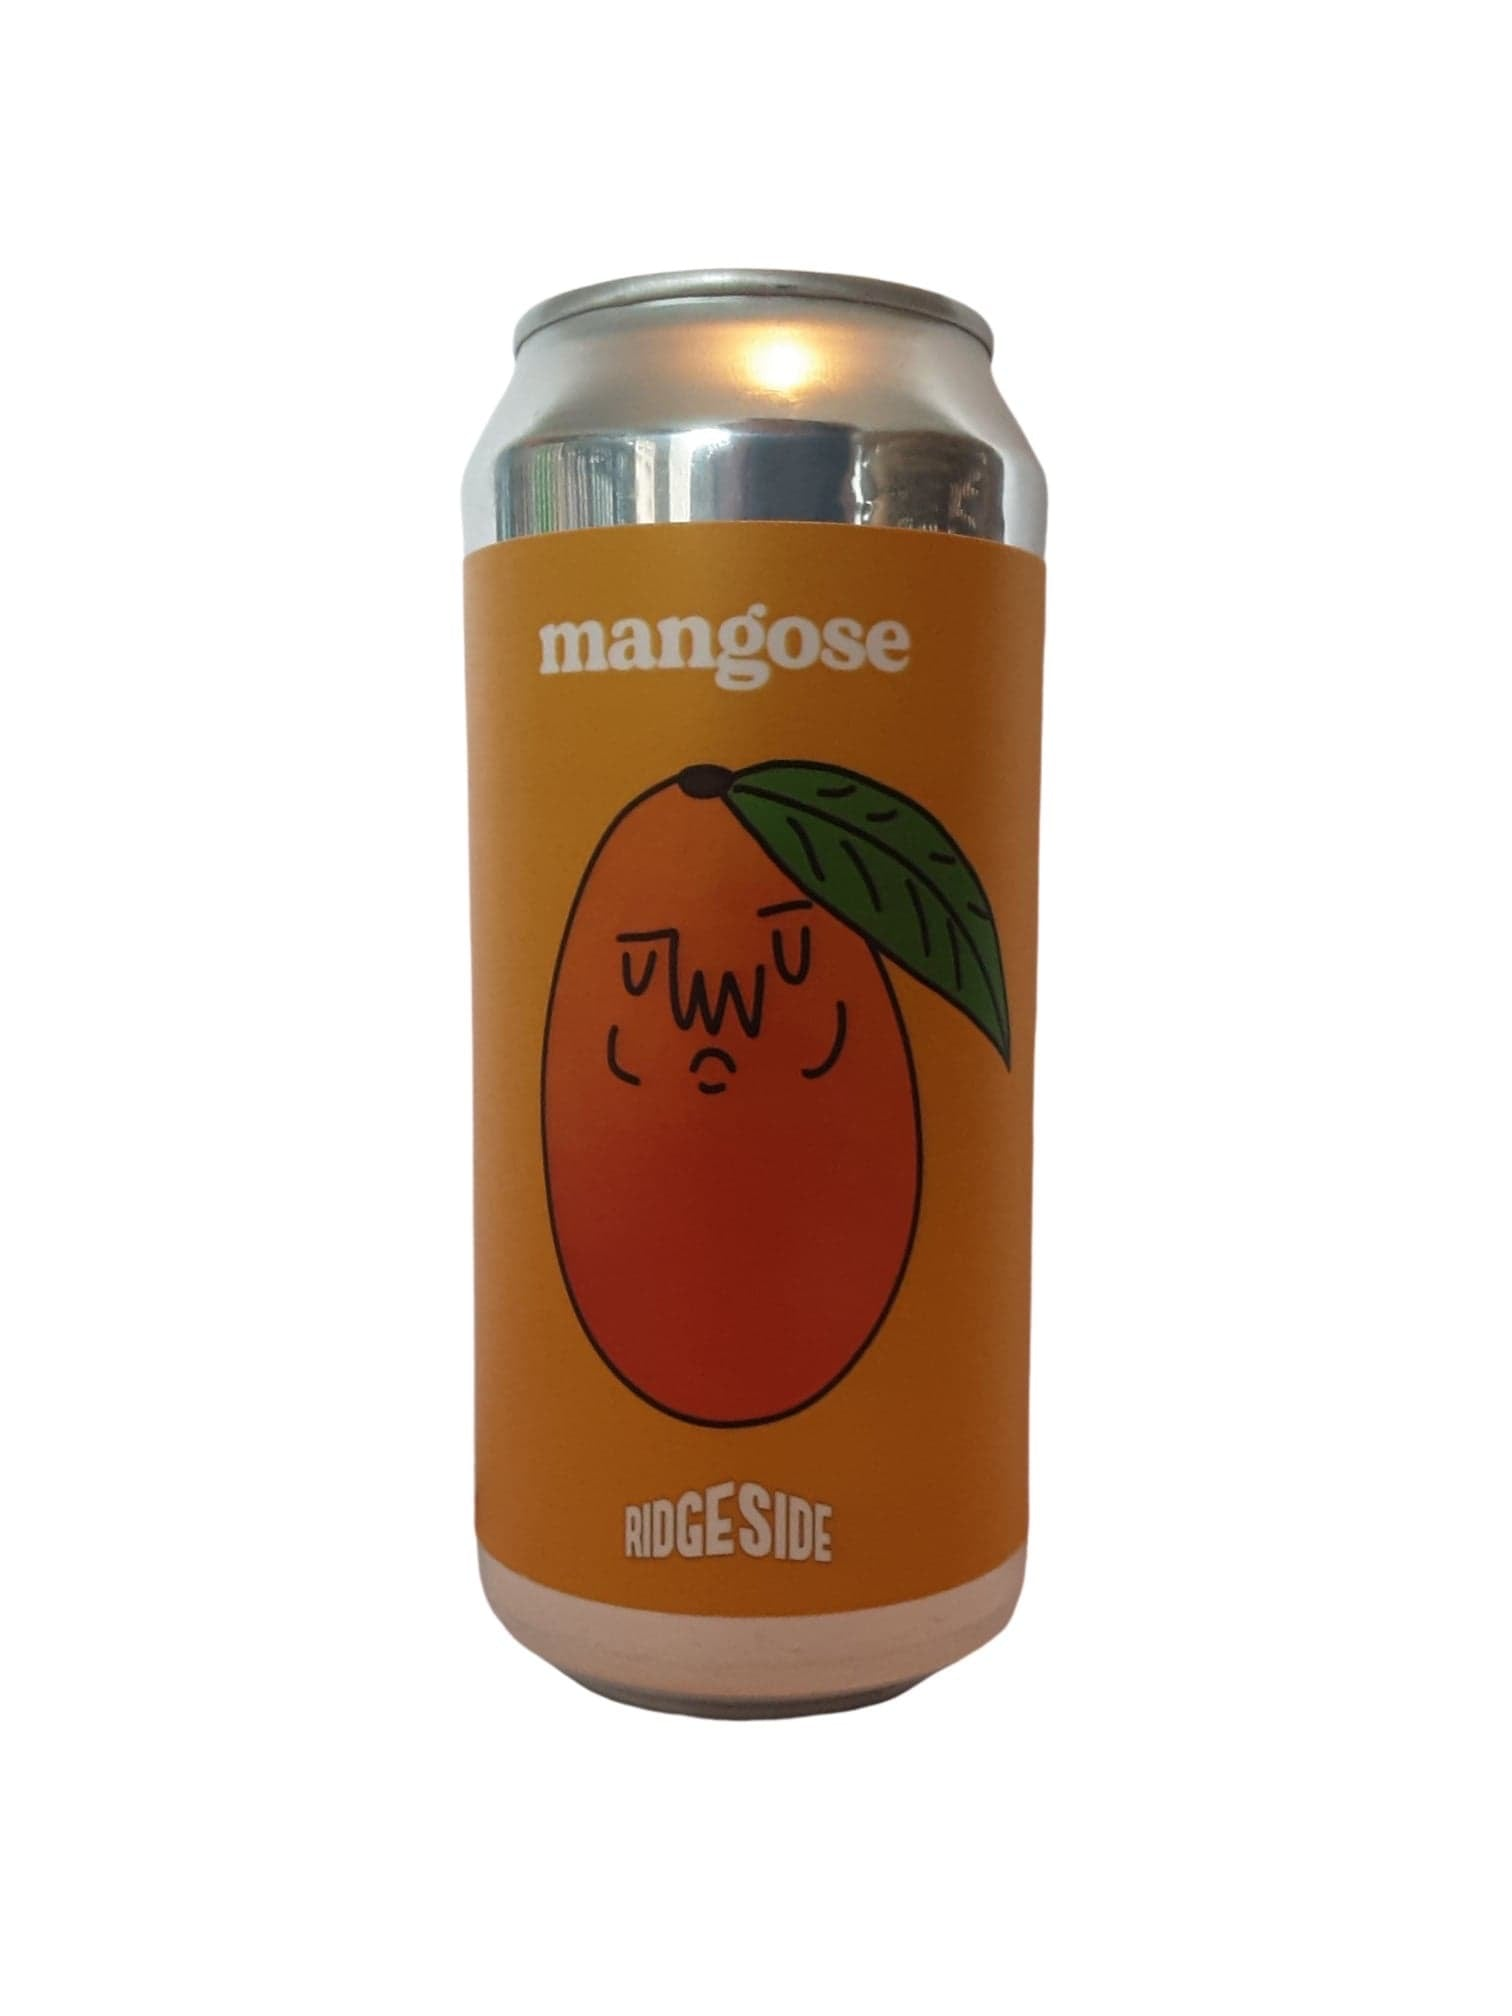 Ridgeside - Mangose - Sour - 4.8% (BRAND NEW)